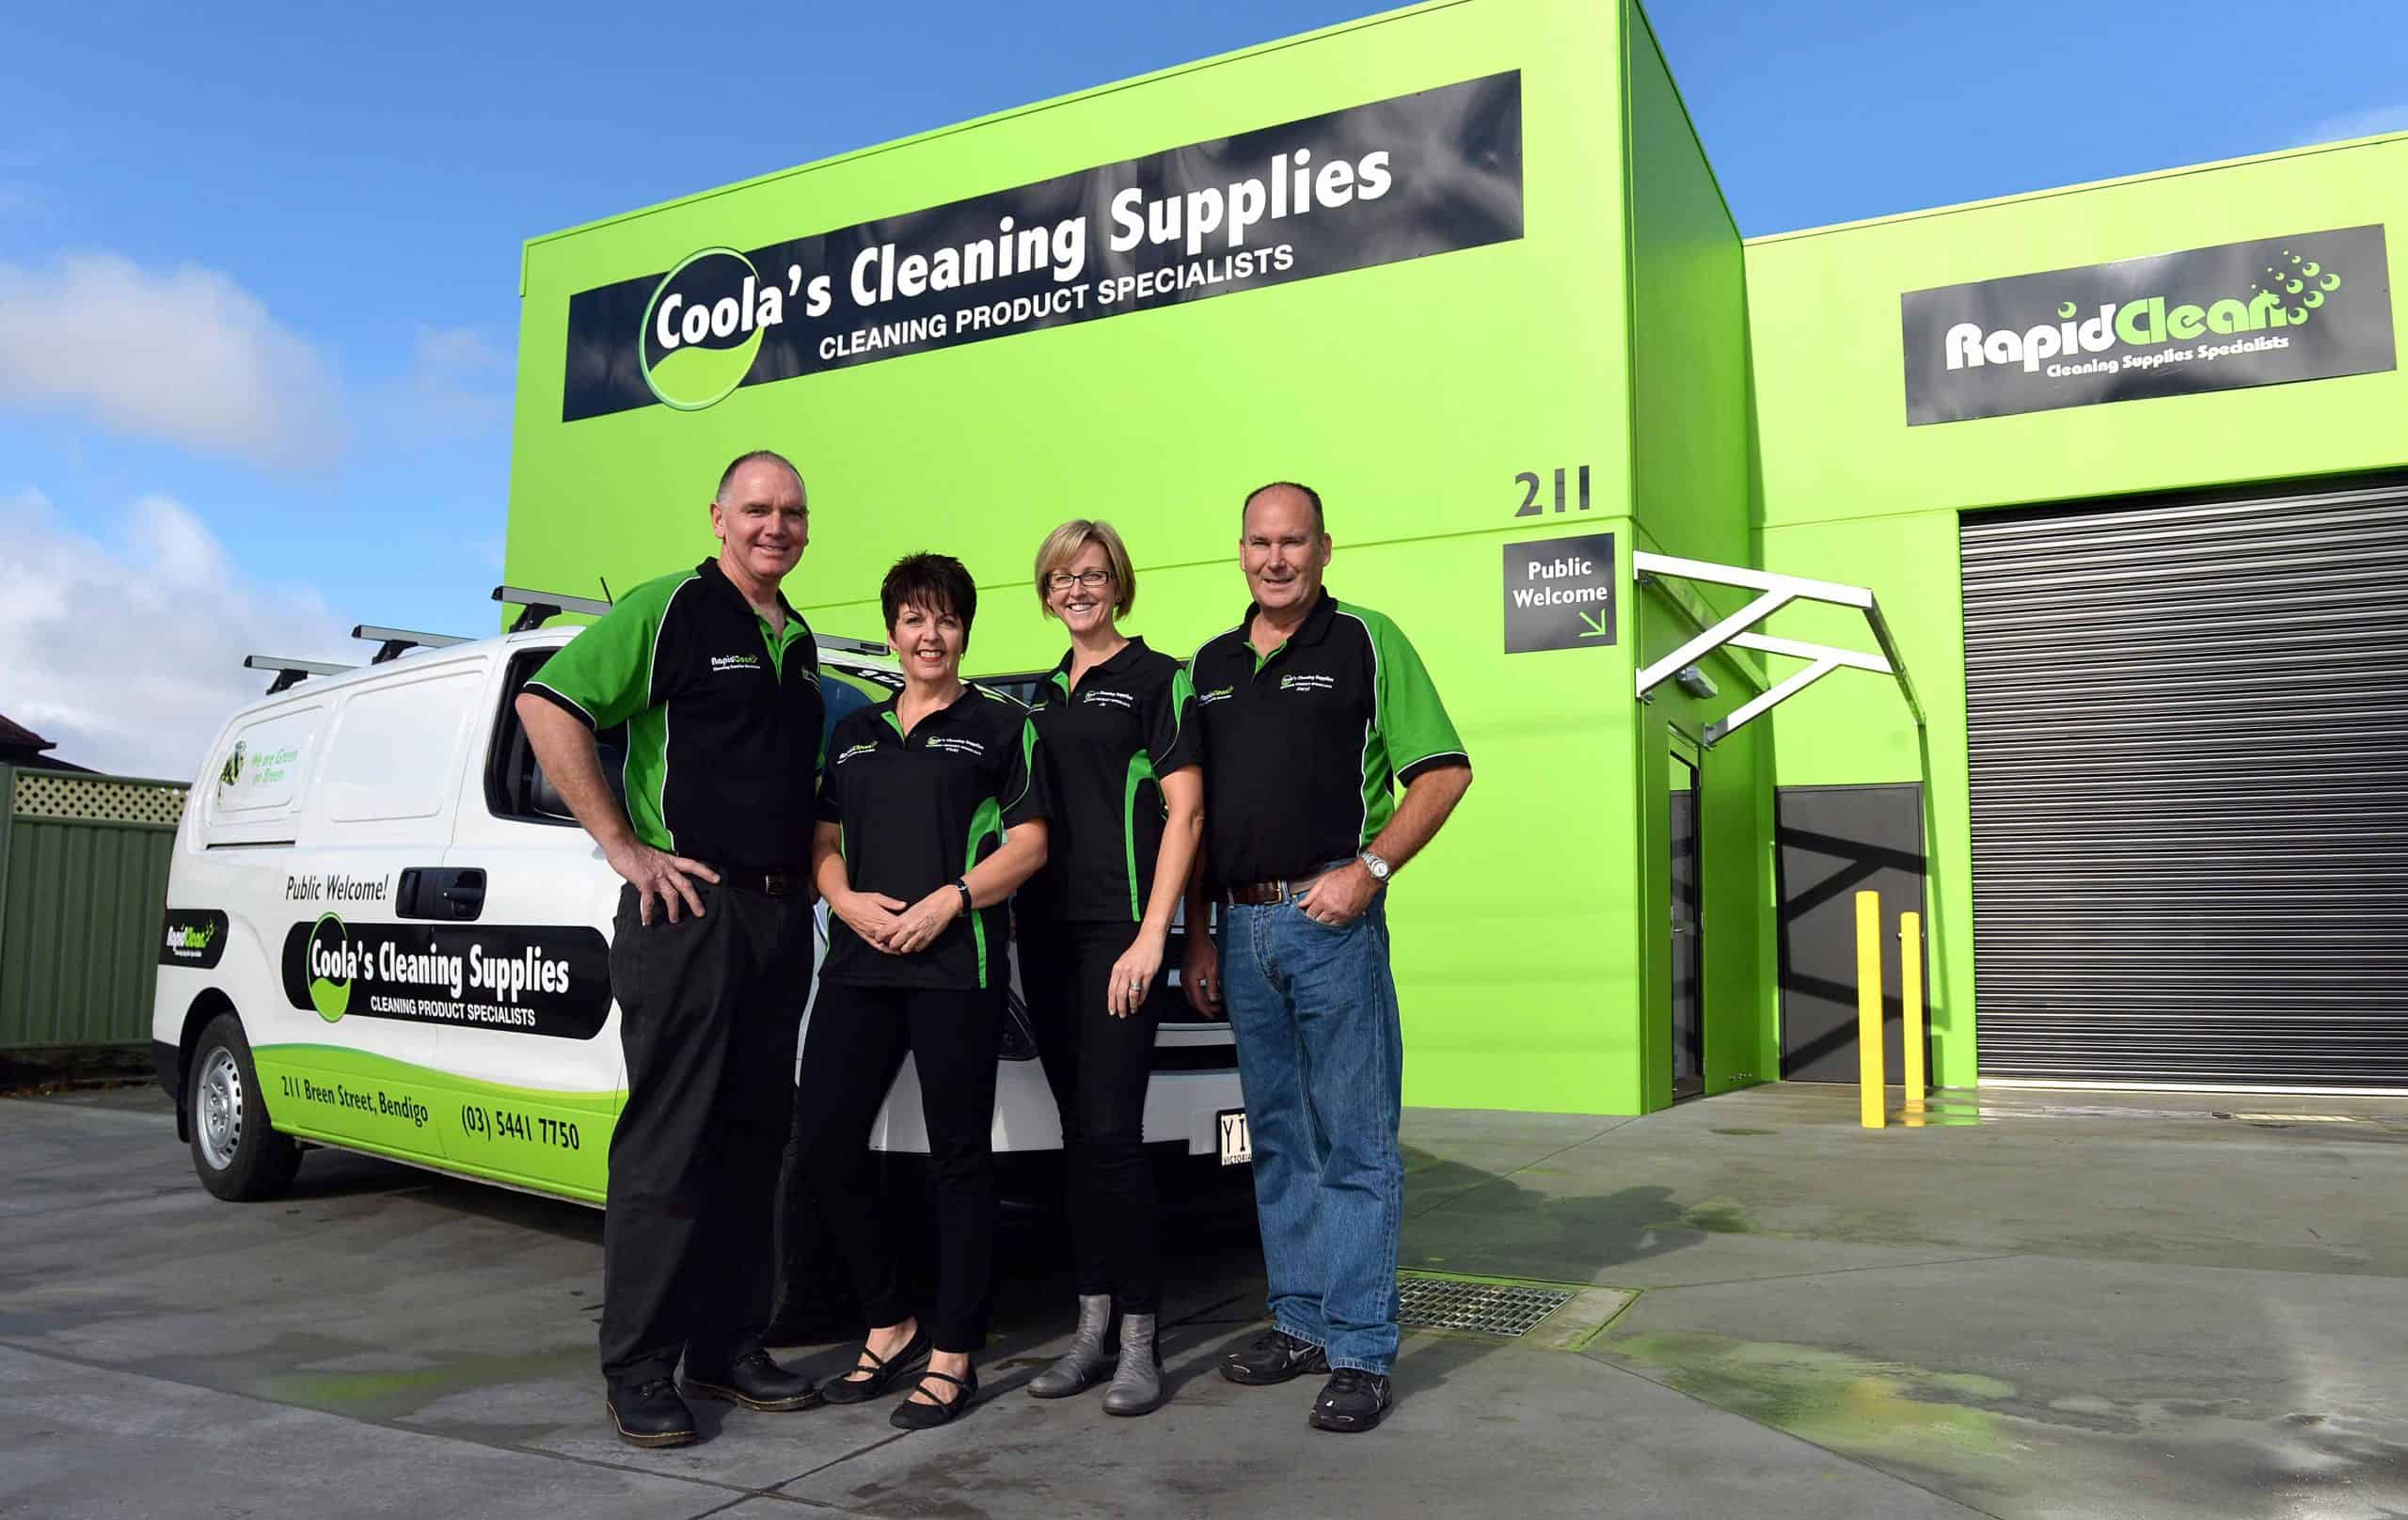 Coolas Cleaning Supplies